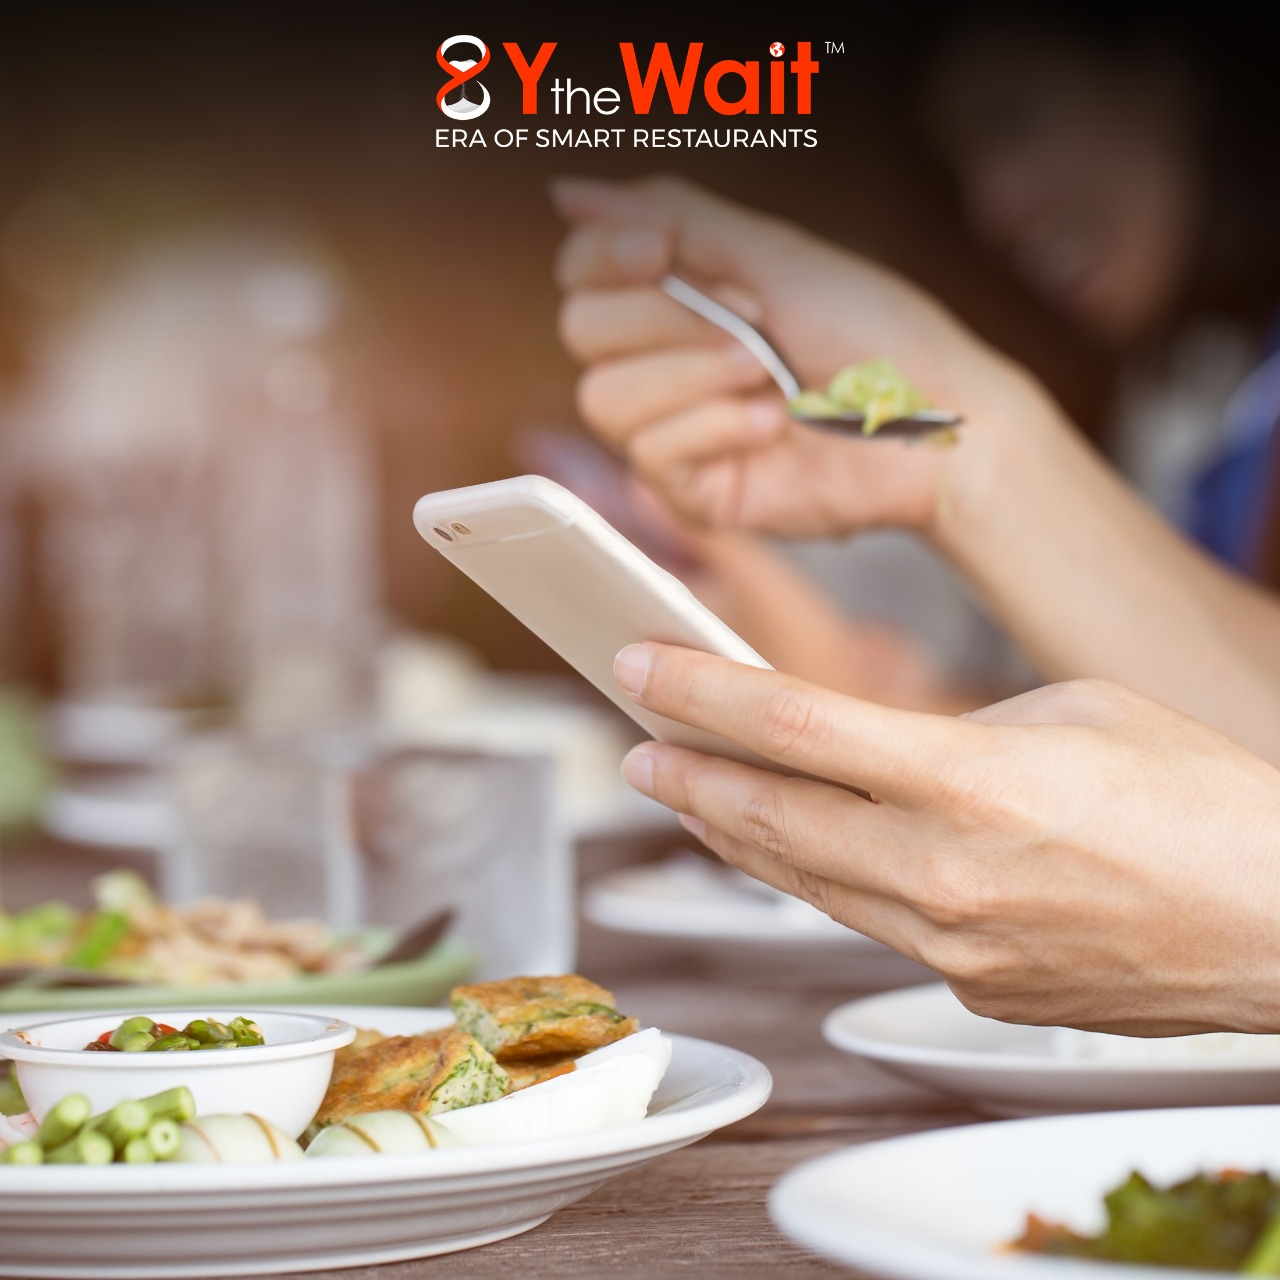 Y the Wait - Digital Waiter App - Digital Menu Order